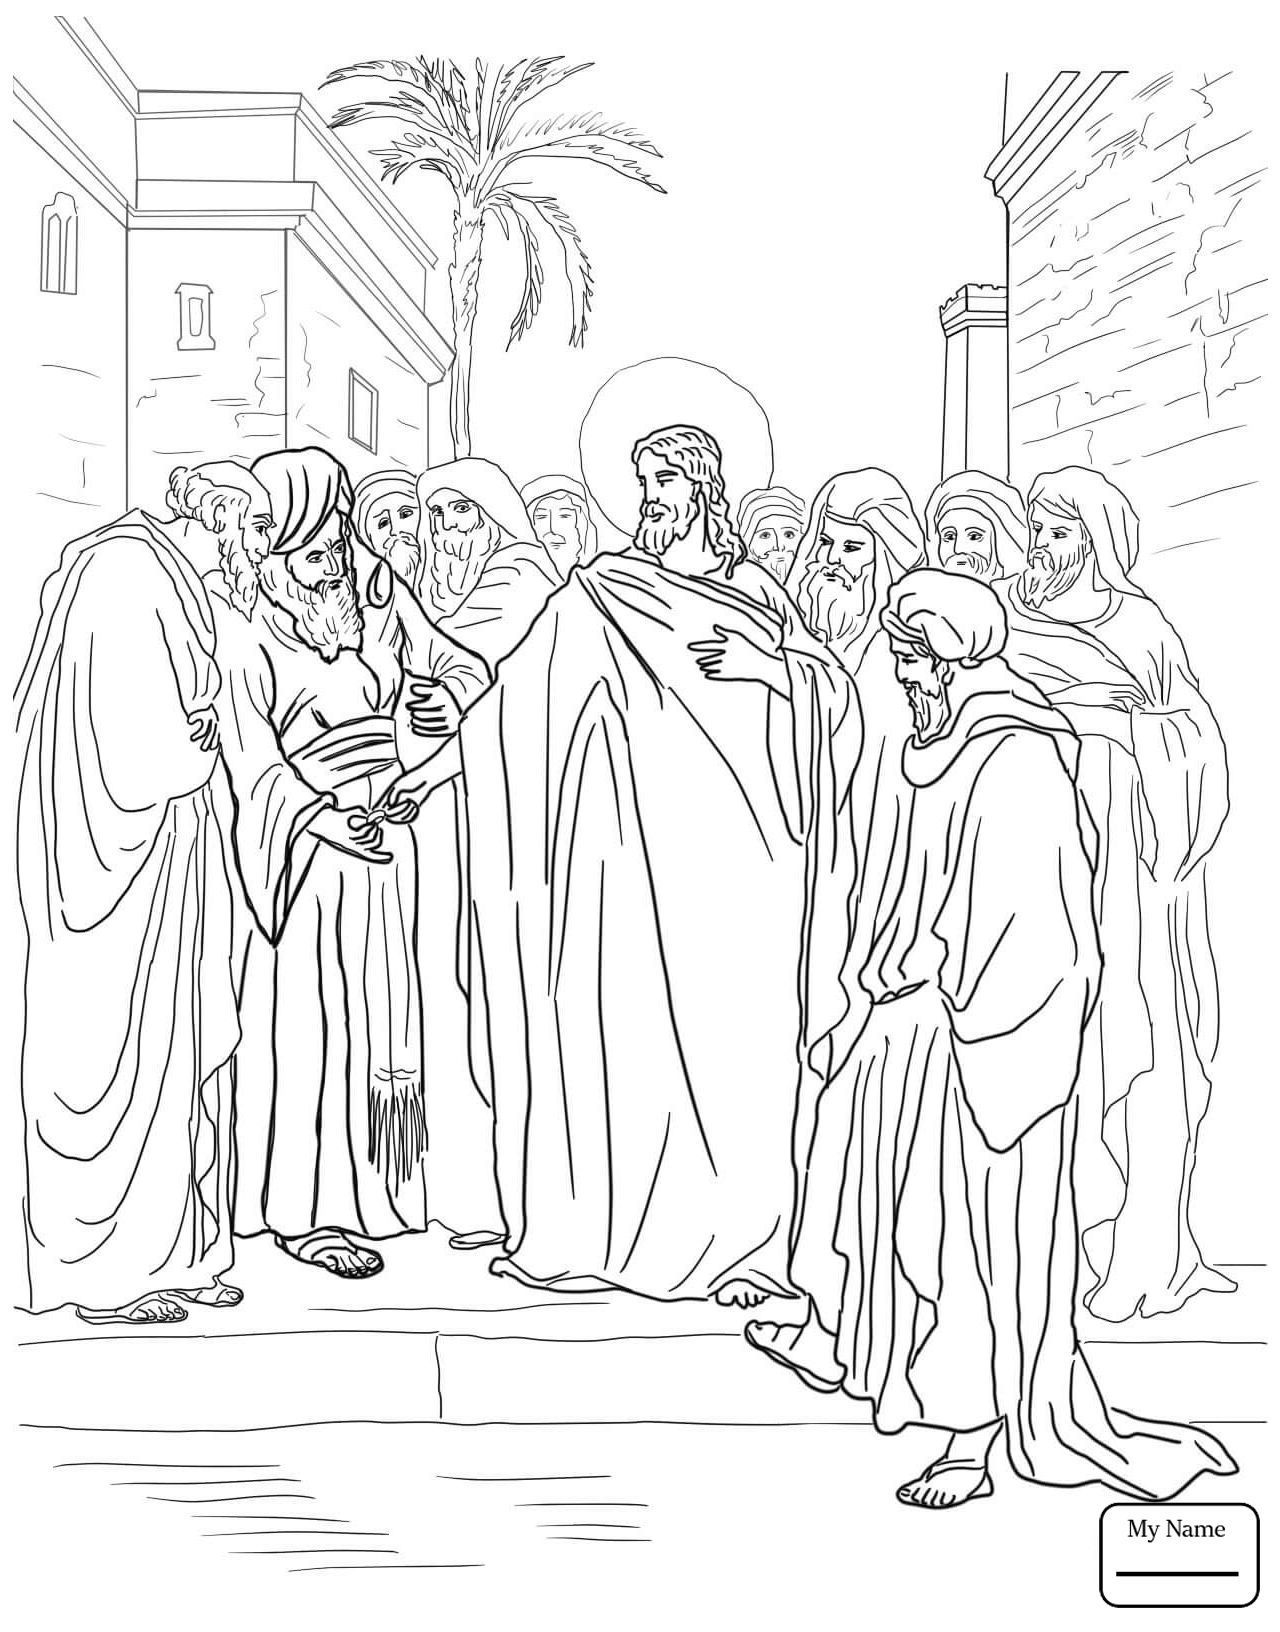 jesus and disciples coloring page jesus calls his disciples coloring page sketch coloring page page coloring and disciples jesus